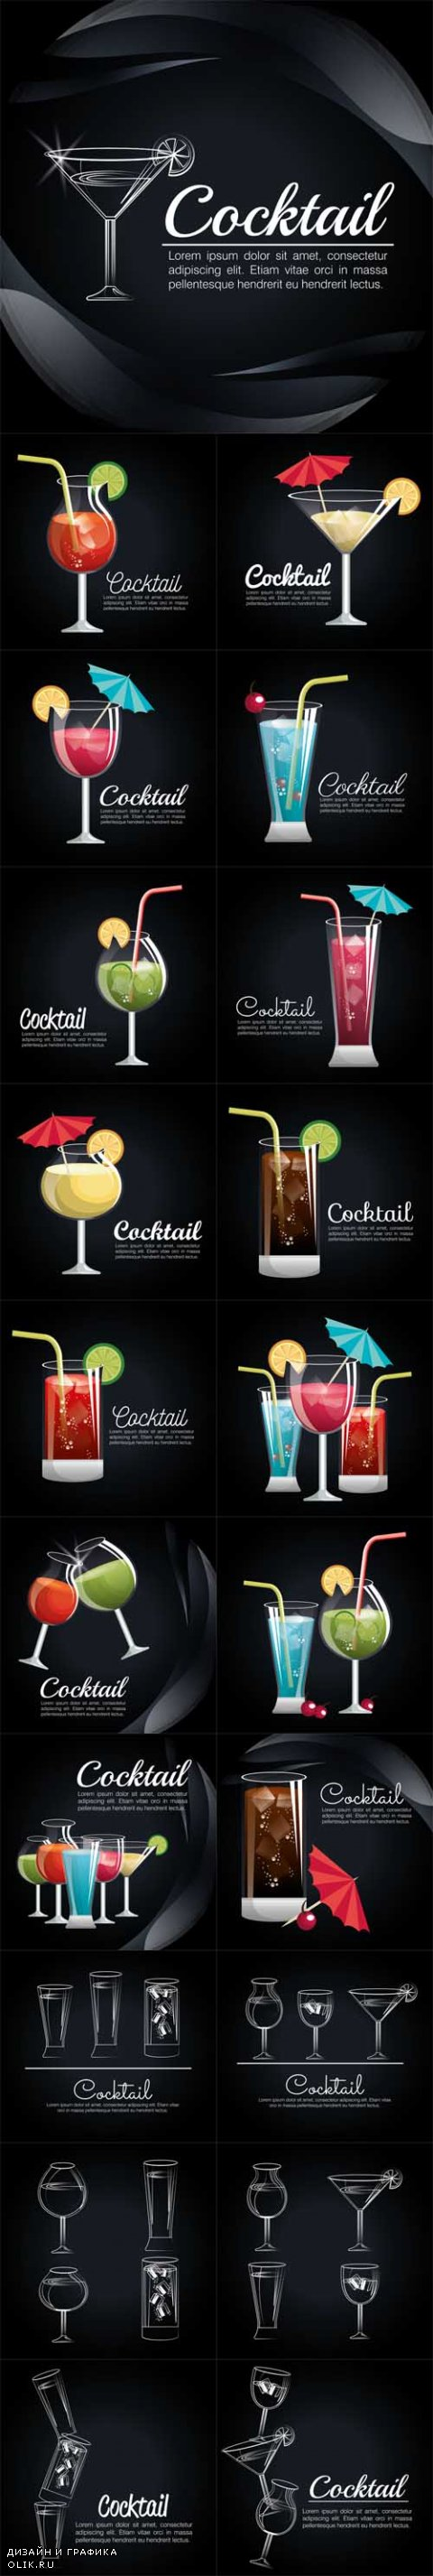 Vector Cocktail Tropical Poster Bar Icon Illustration Design